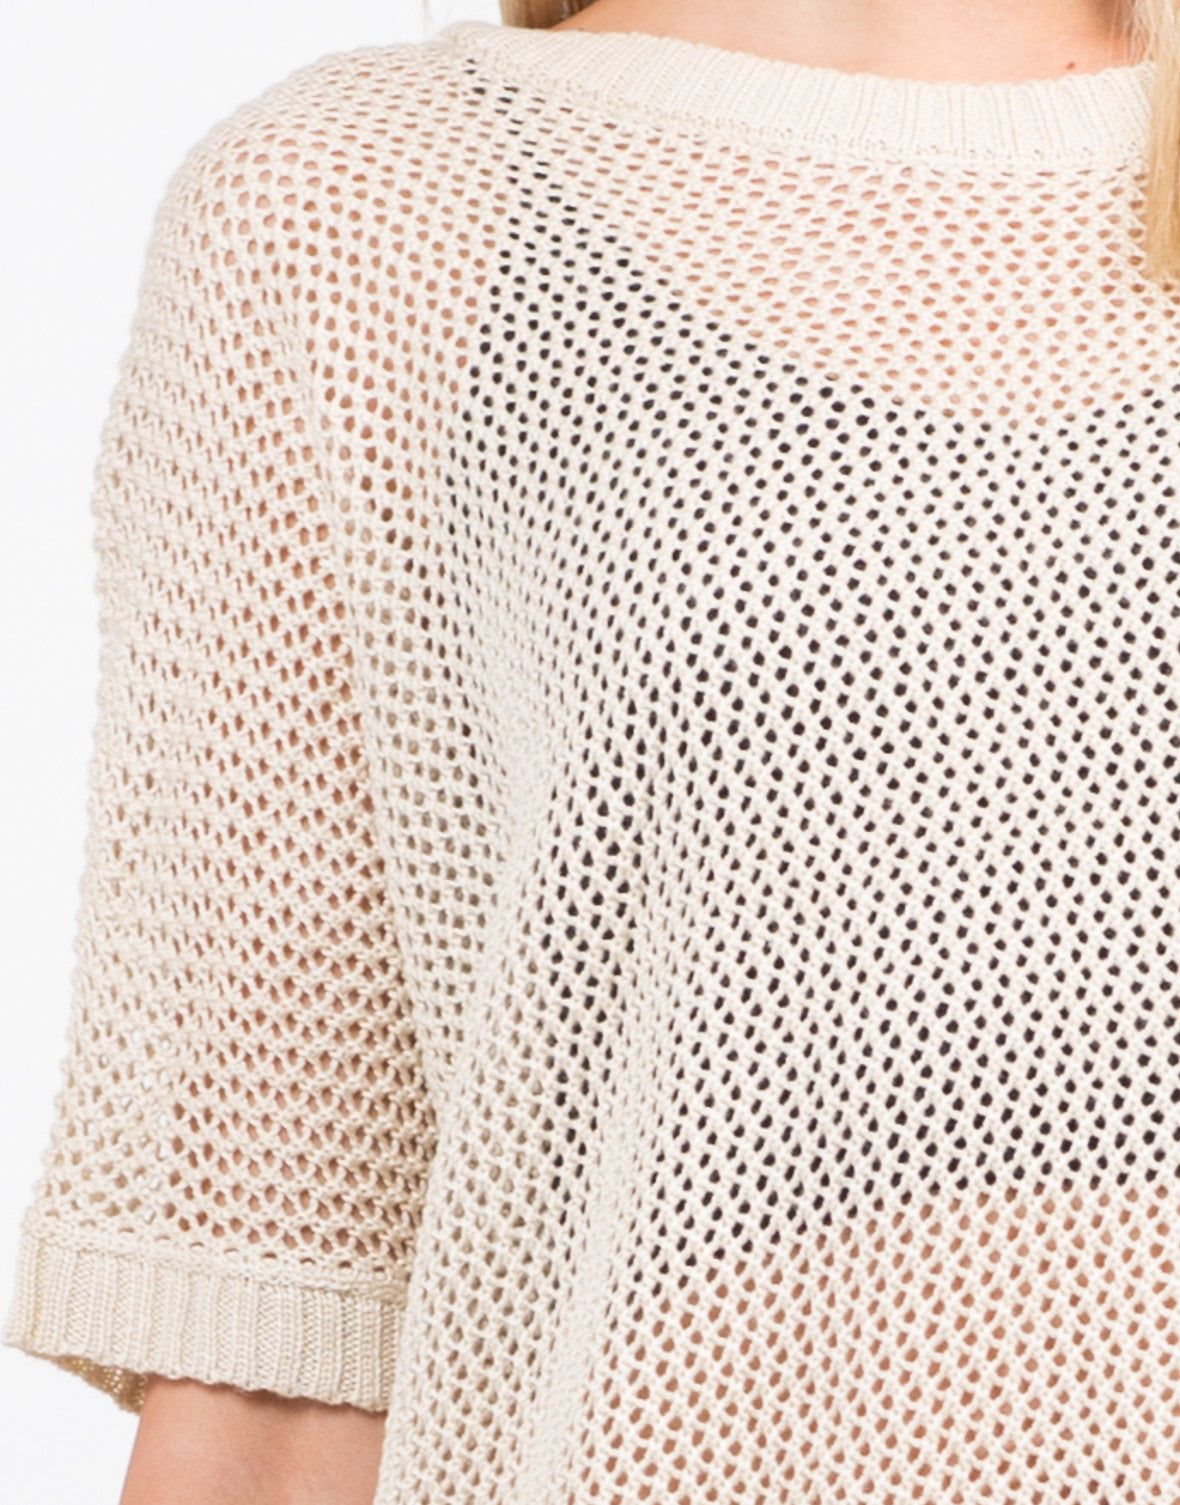 Detail of Honeycomb Knit Top